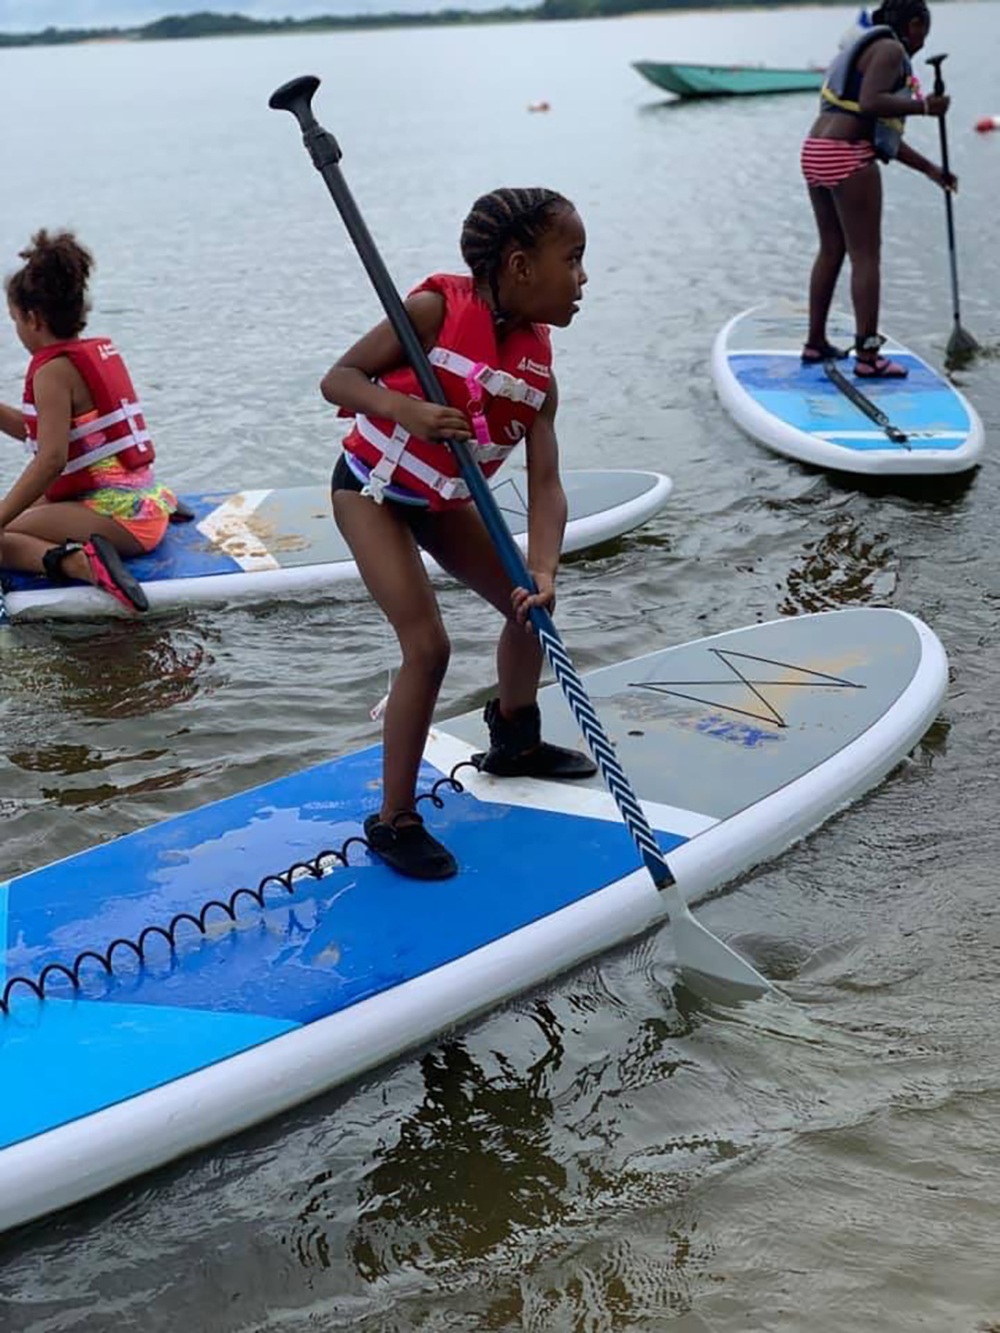 Students paddle boarding on the Chesapeake Bay. Photo credit: Baltimore County Sailing Center